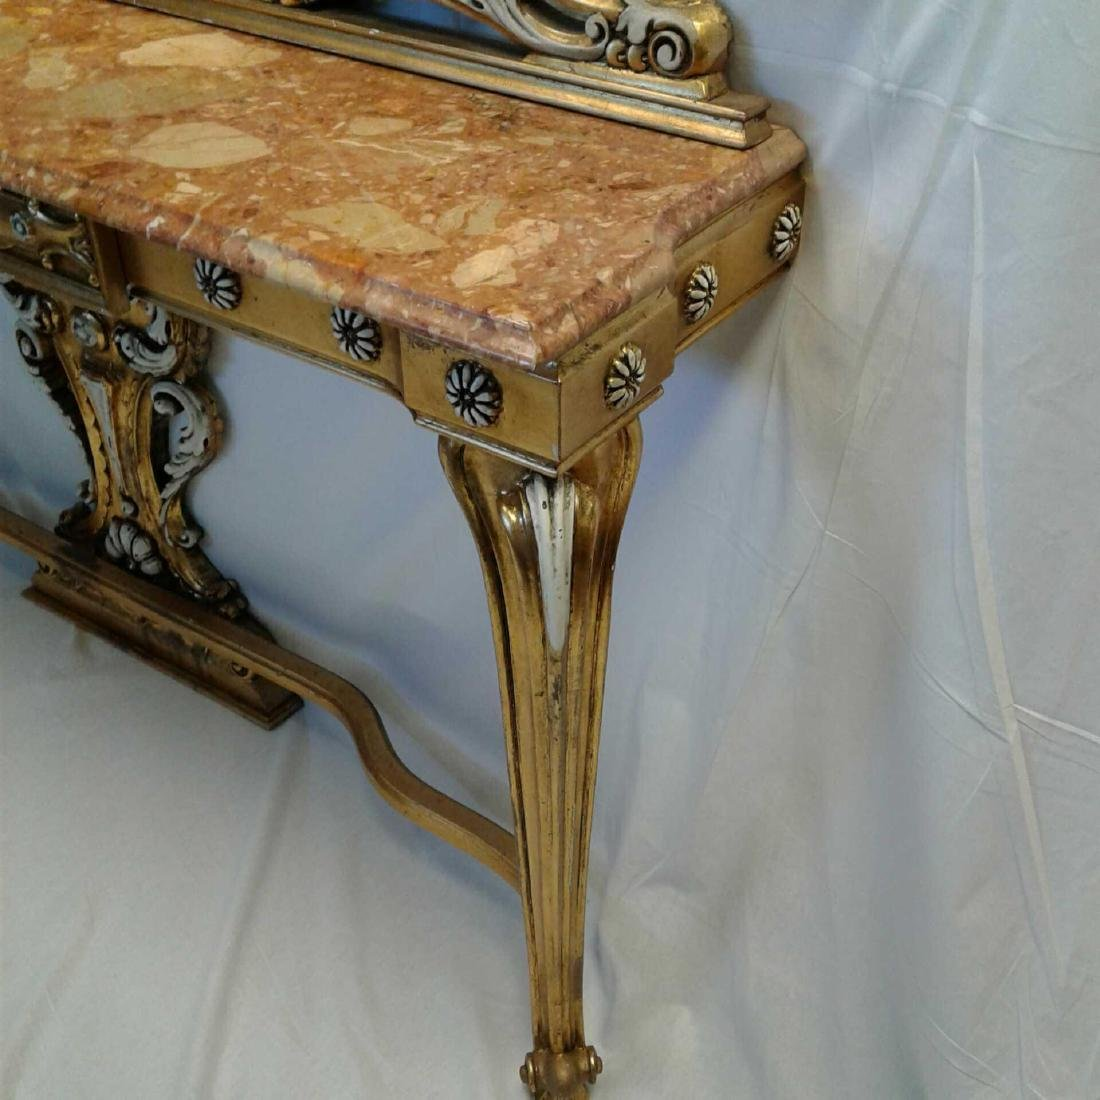 Late Baroque/Rococo Style Console Table with Mirror - 3